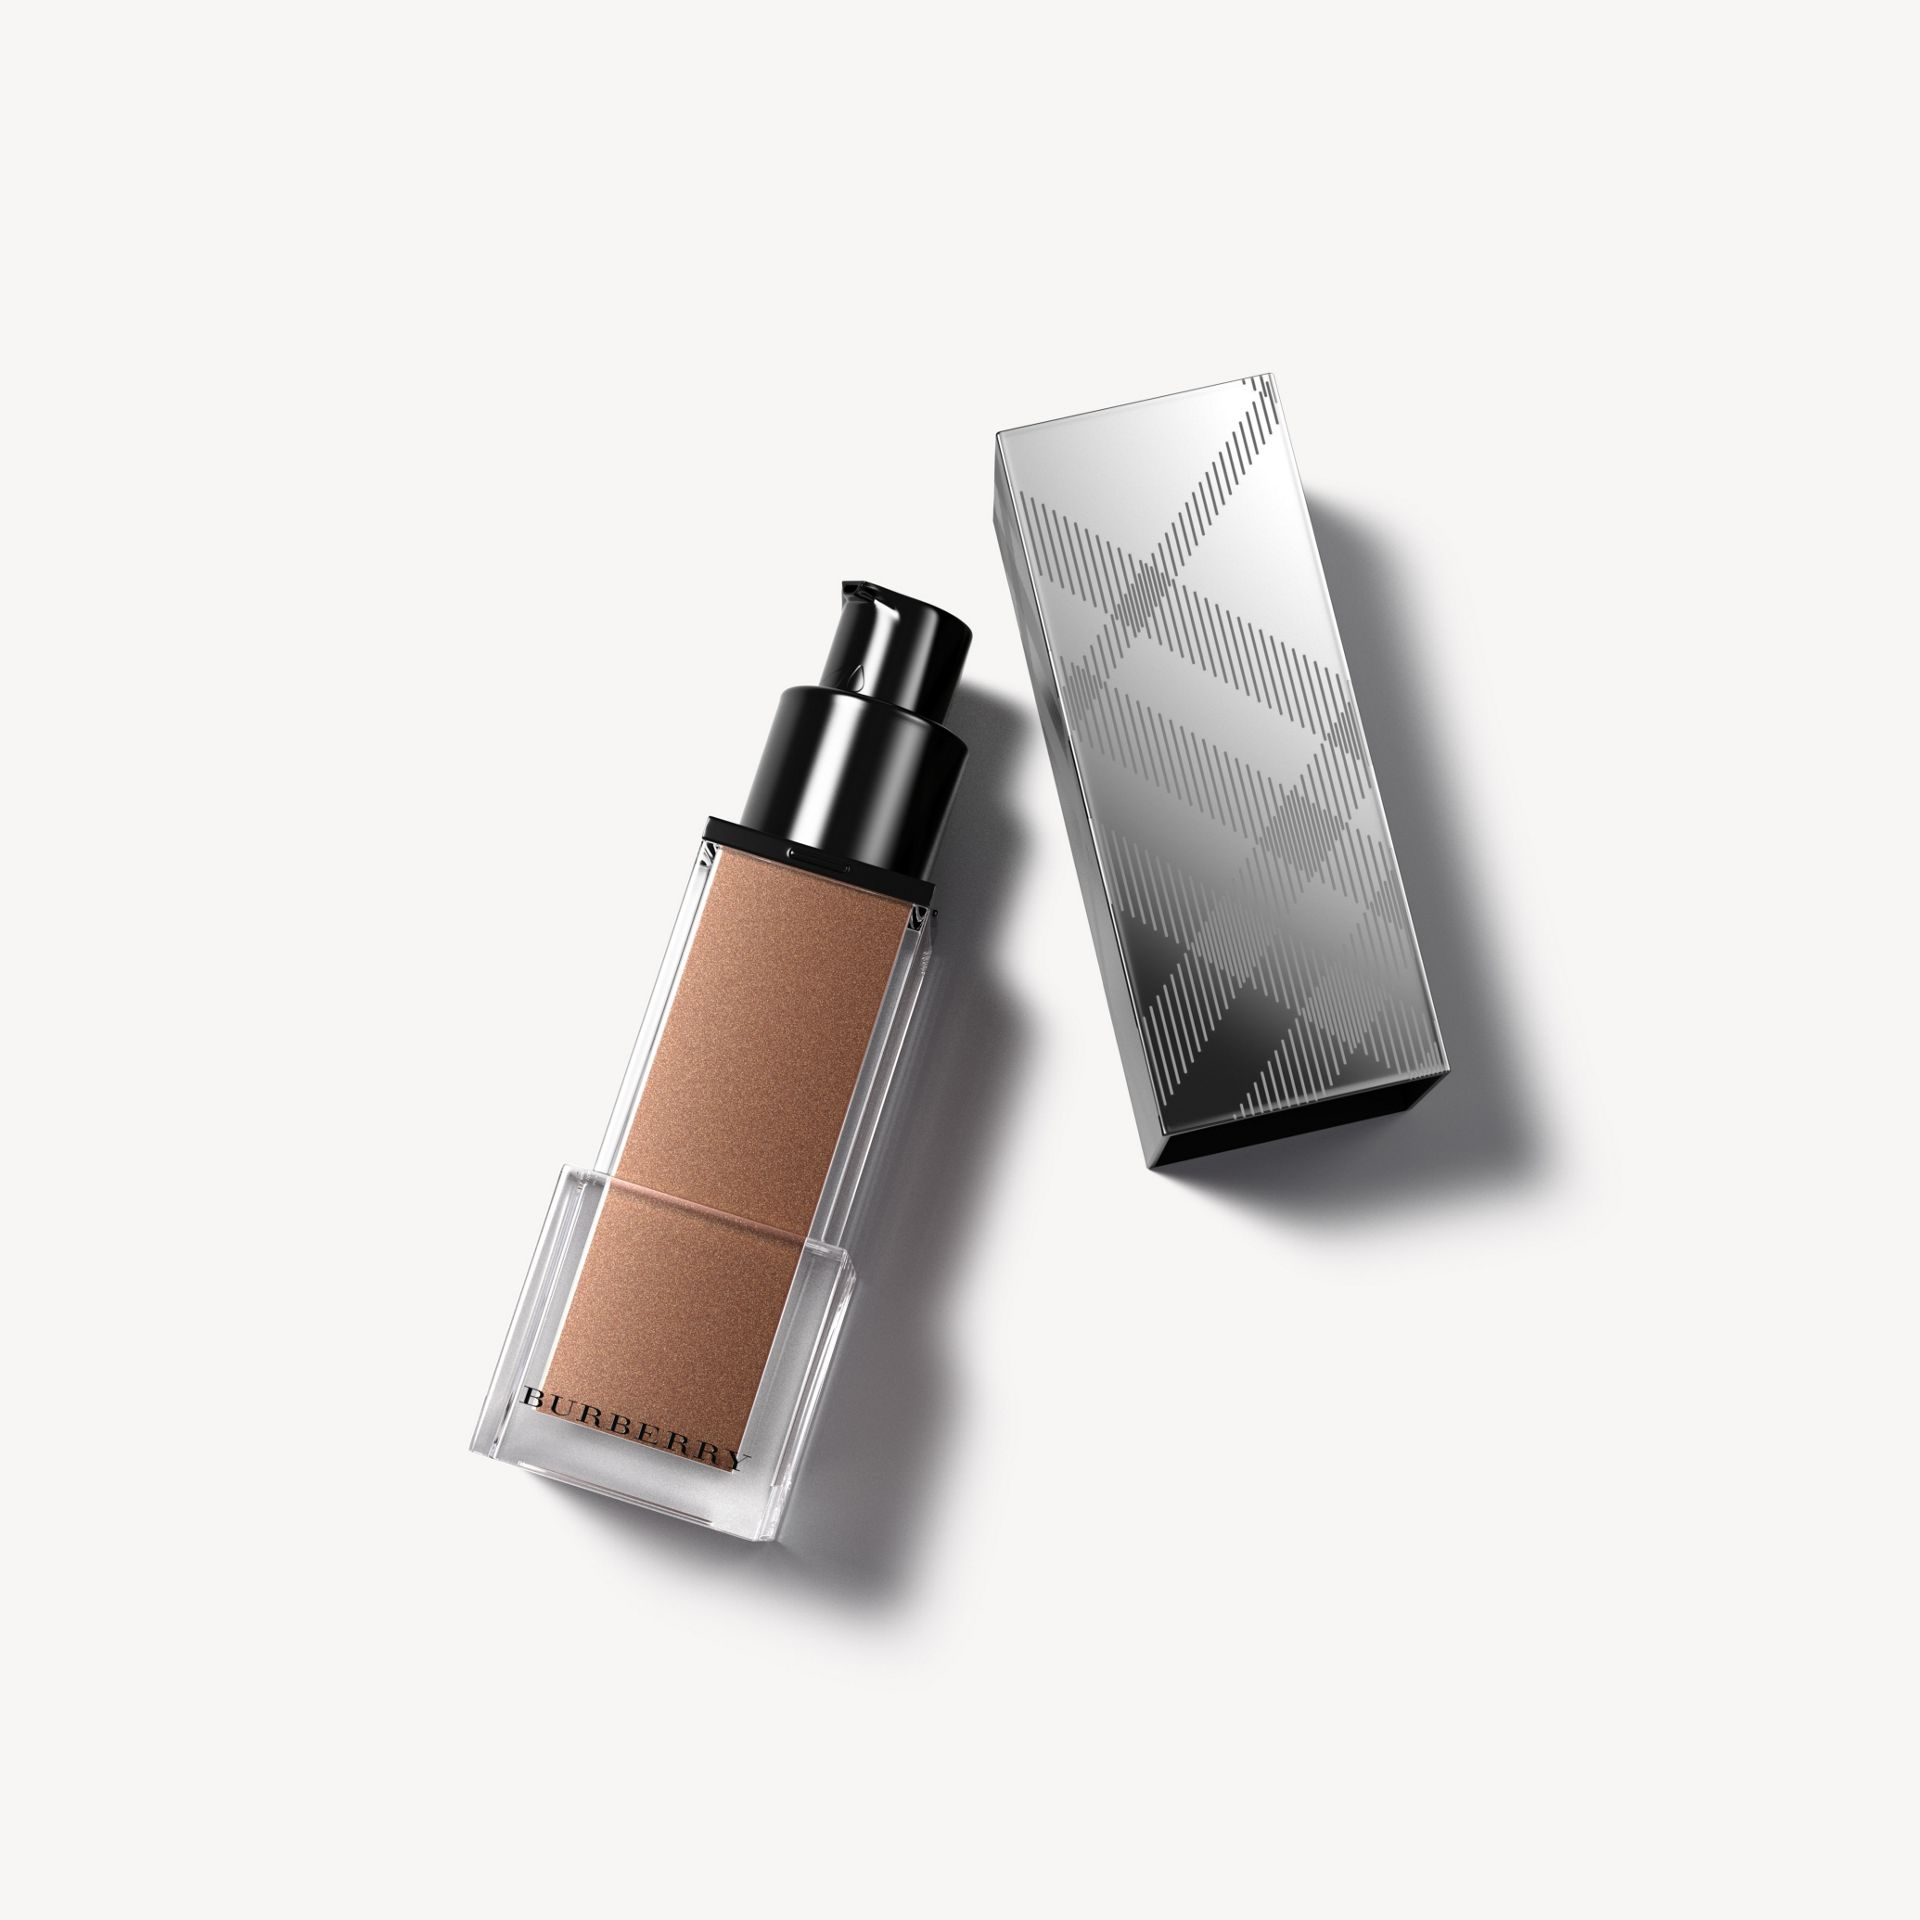 Основа под макияж Fresh Glow Luminous Fluid Base, Golden Radiance № 02 (№ 02) - Для женщин | Burberry - изображение 0